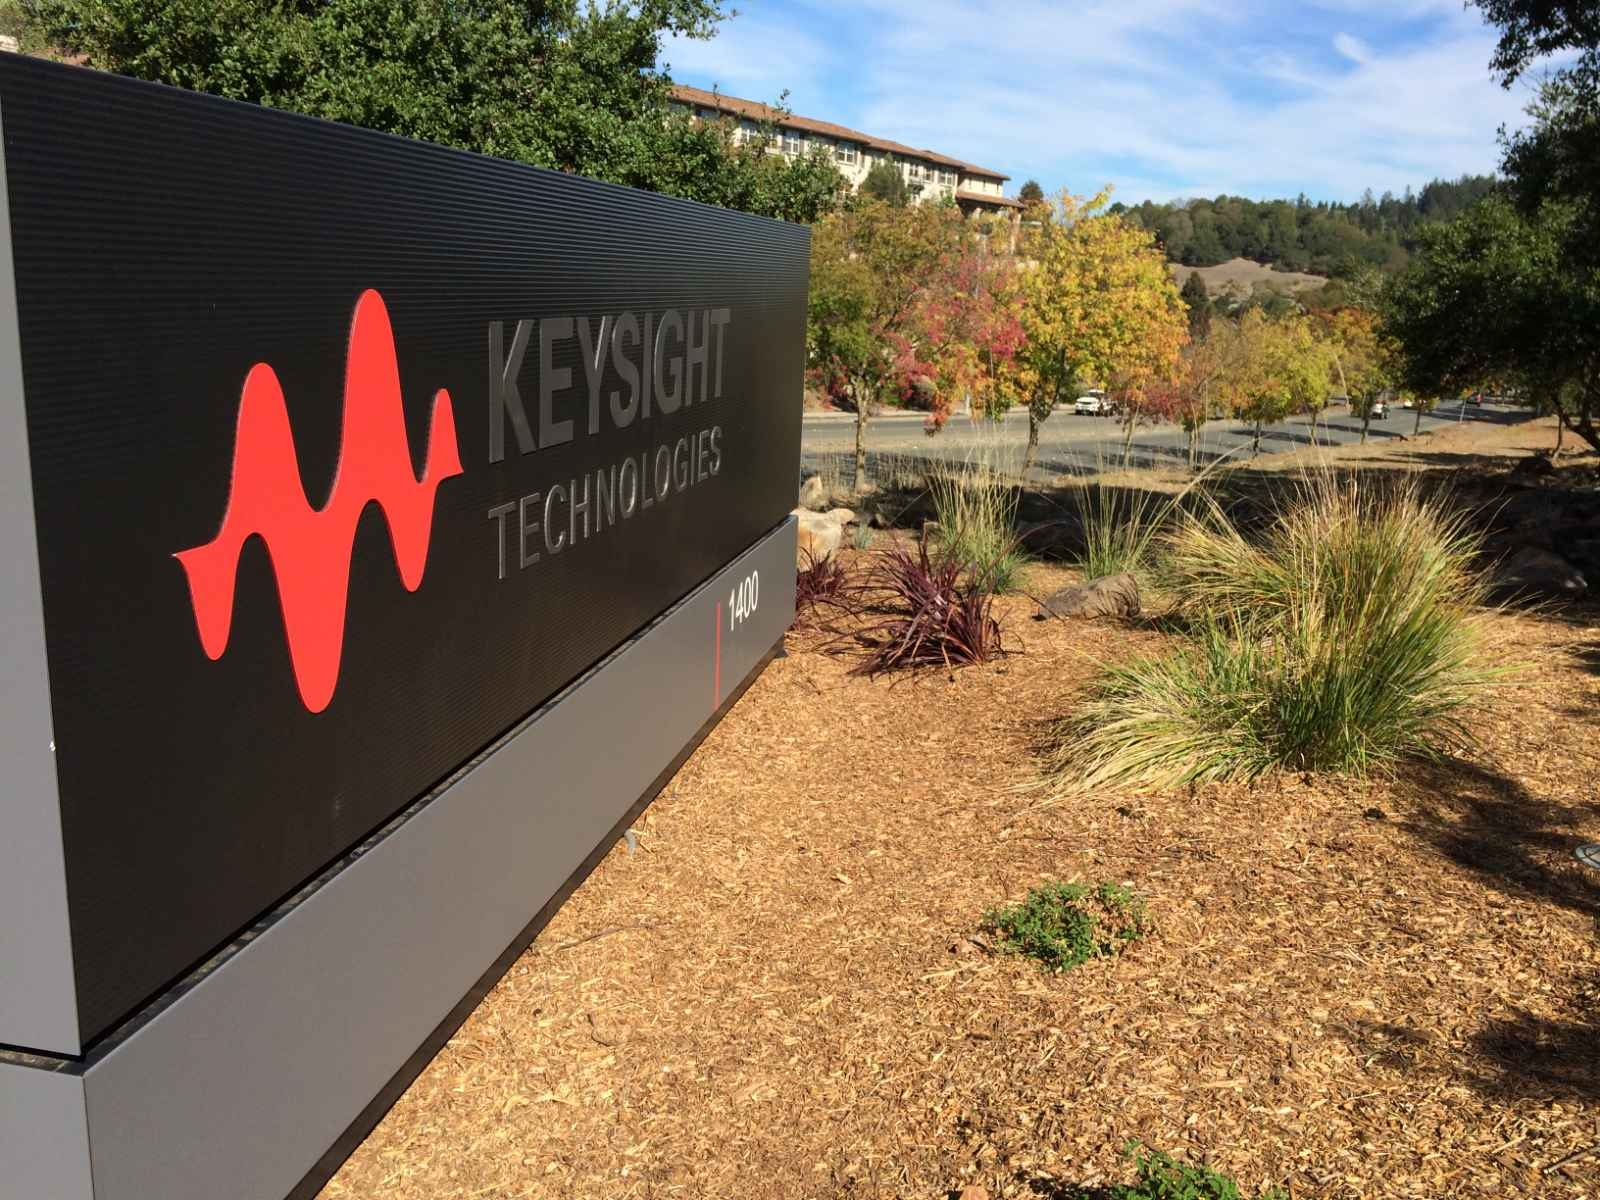 Keysight Technologies acquires Eggplant to strengthen automation test market